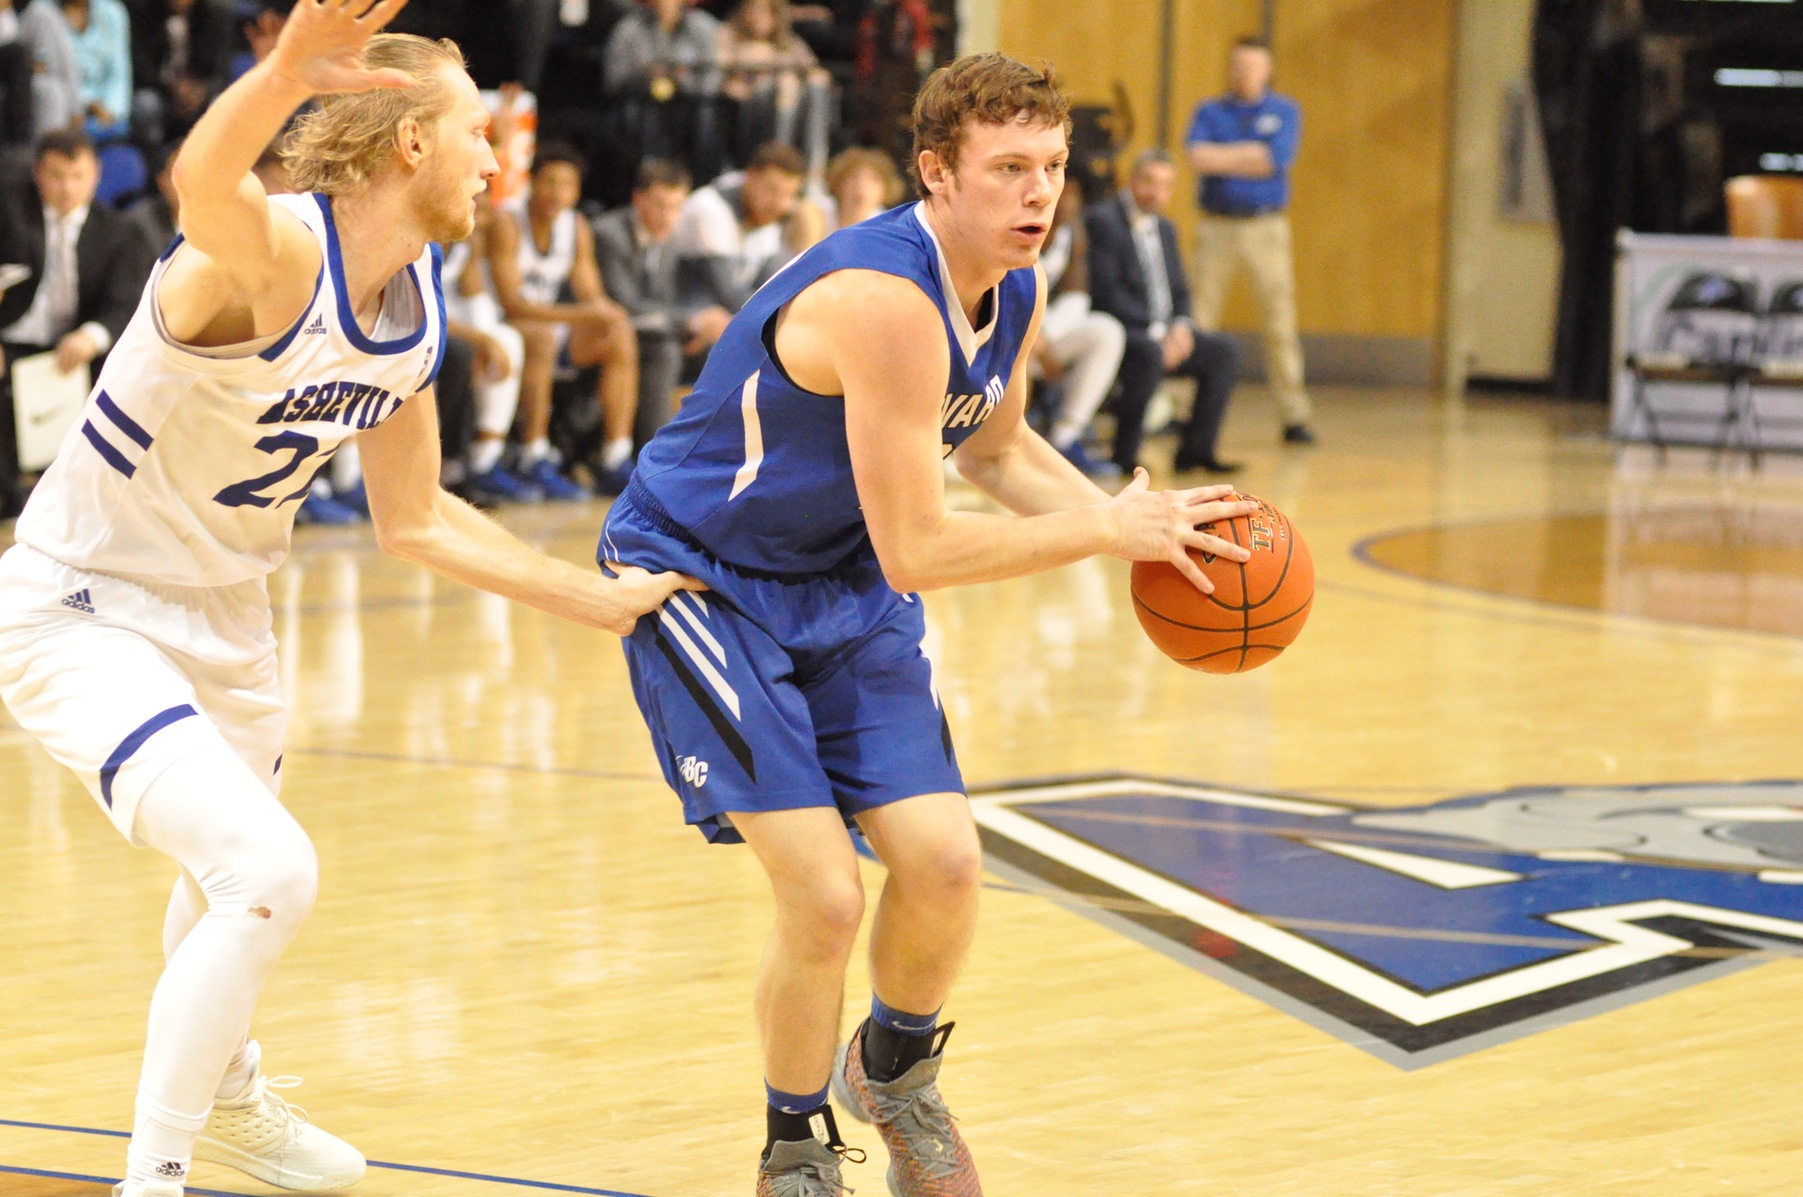 Cannon Lamb led the way for the Tornados with 14 points, six rebounds, and two assists in Brevard's exhibition vs. UNCA (Photo courtesy of Tommy Moss).